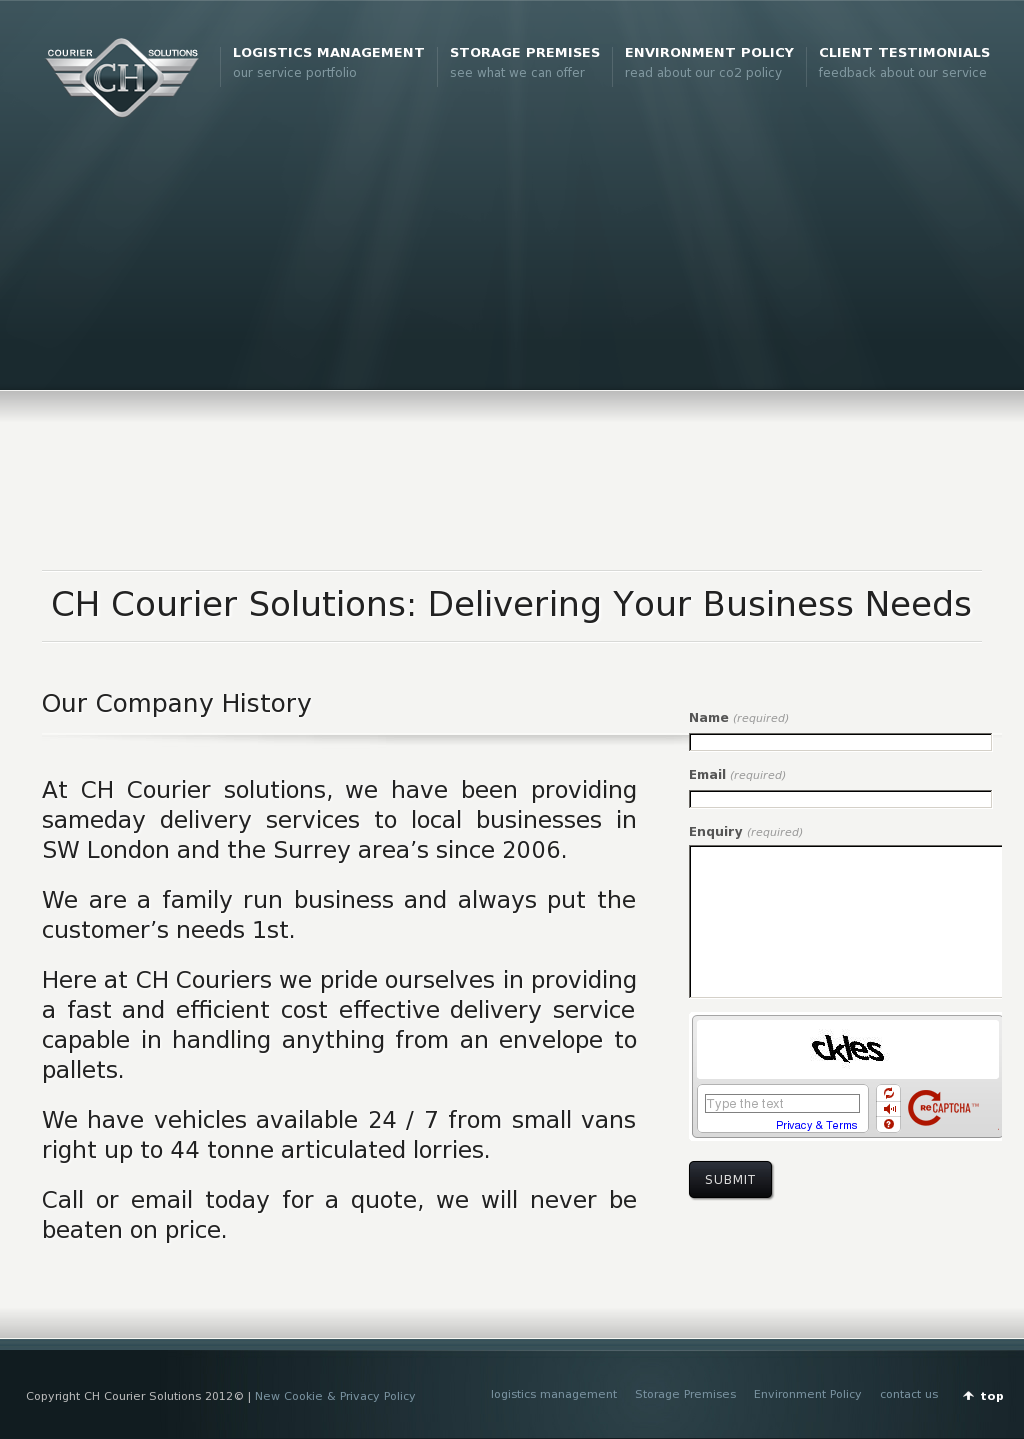 Ch Courier Solutions Competitors, Revenue and Employees - Owler